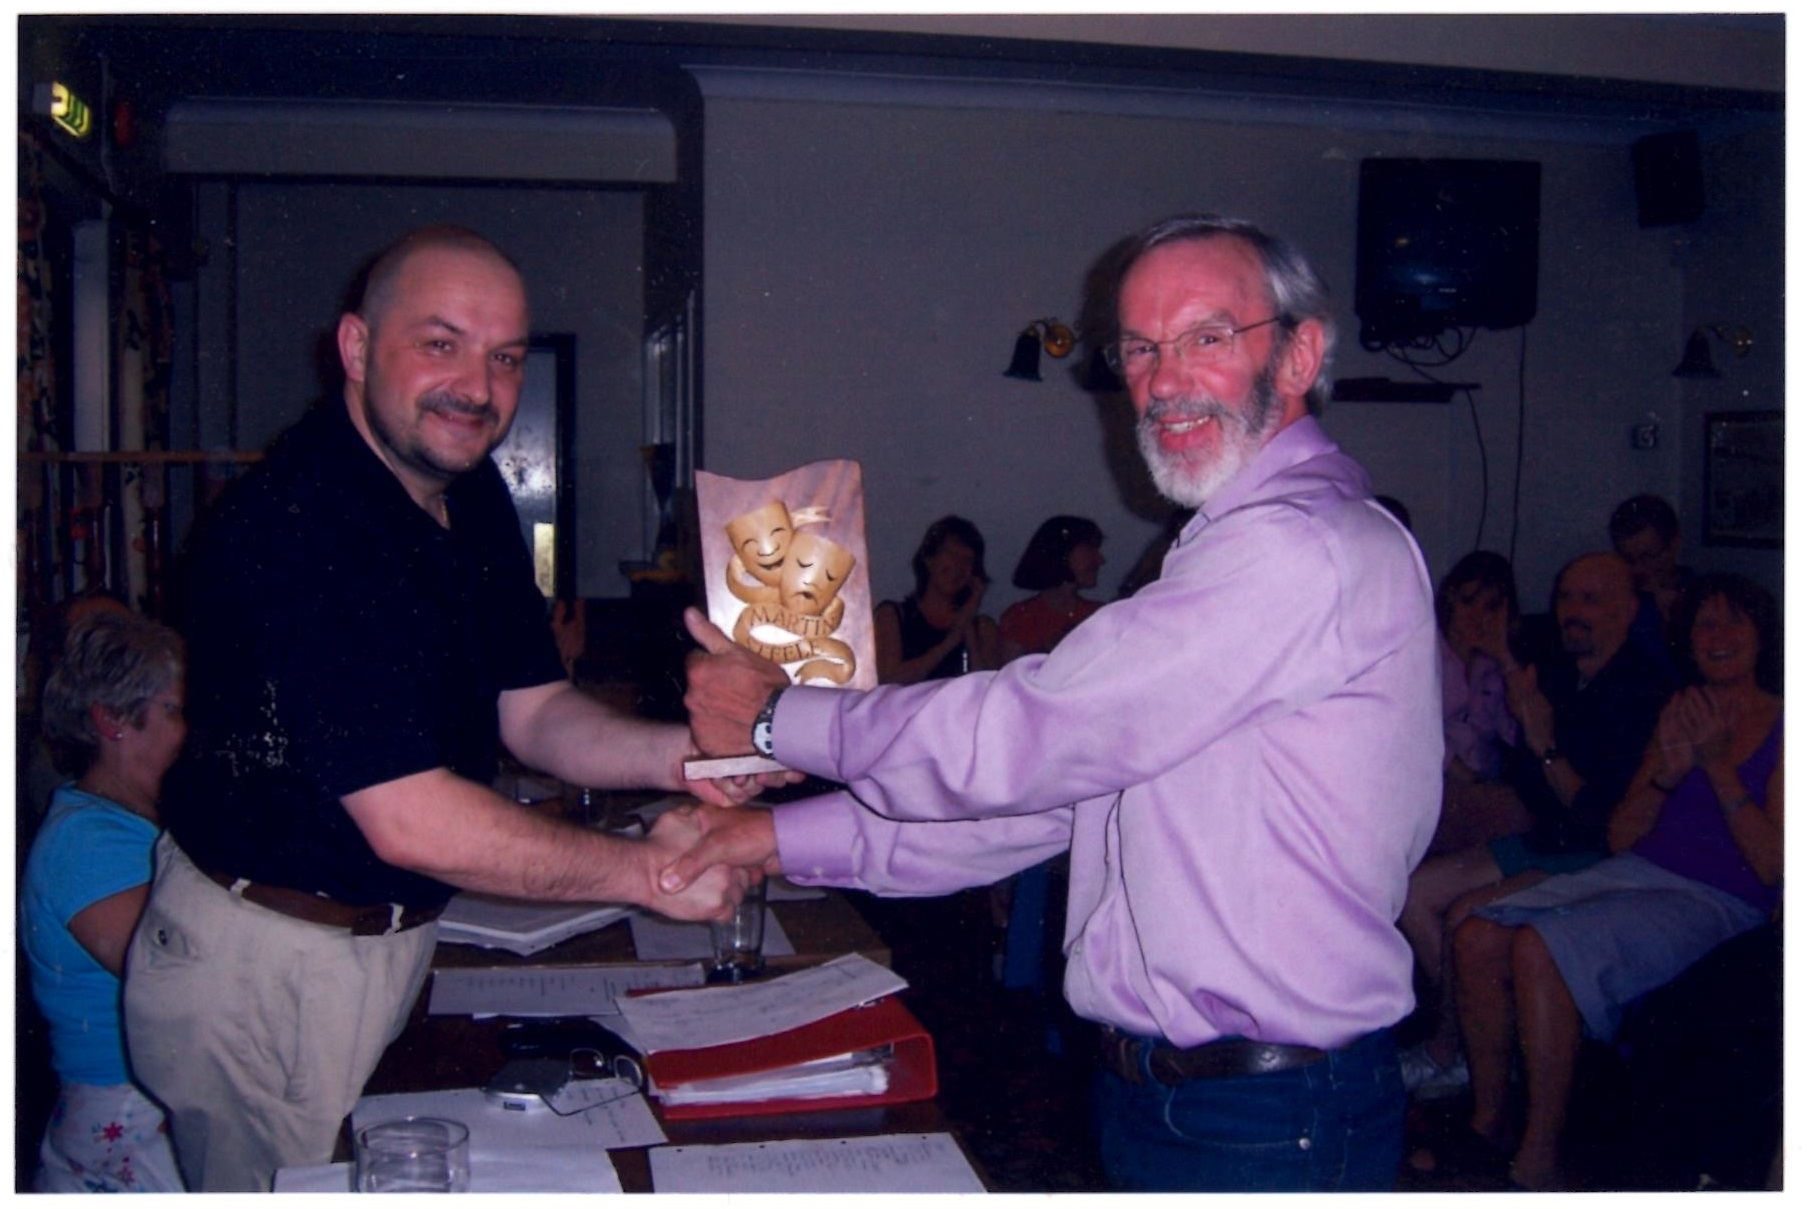 David Brown, right, receiving the Martin Steele Award himself from then chair Paul Garner